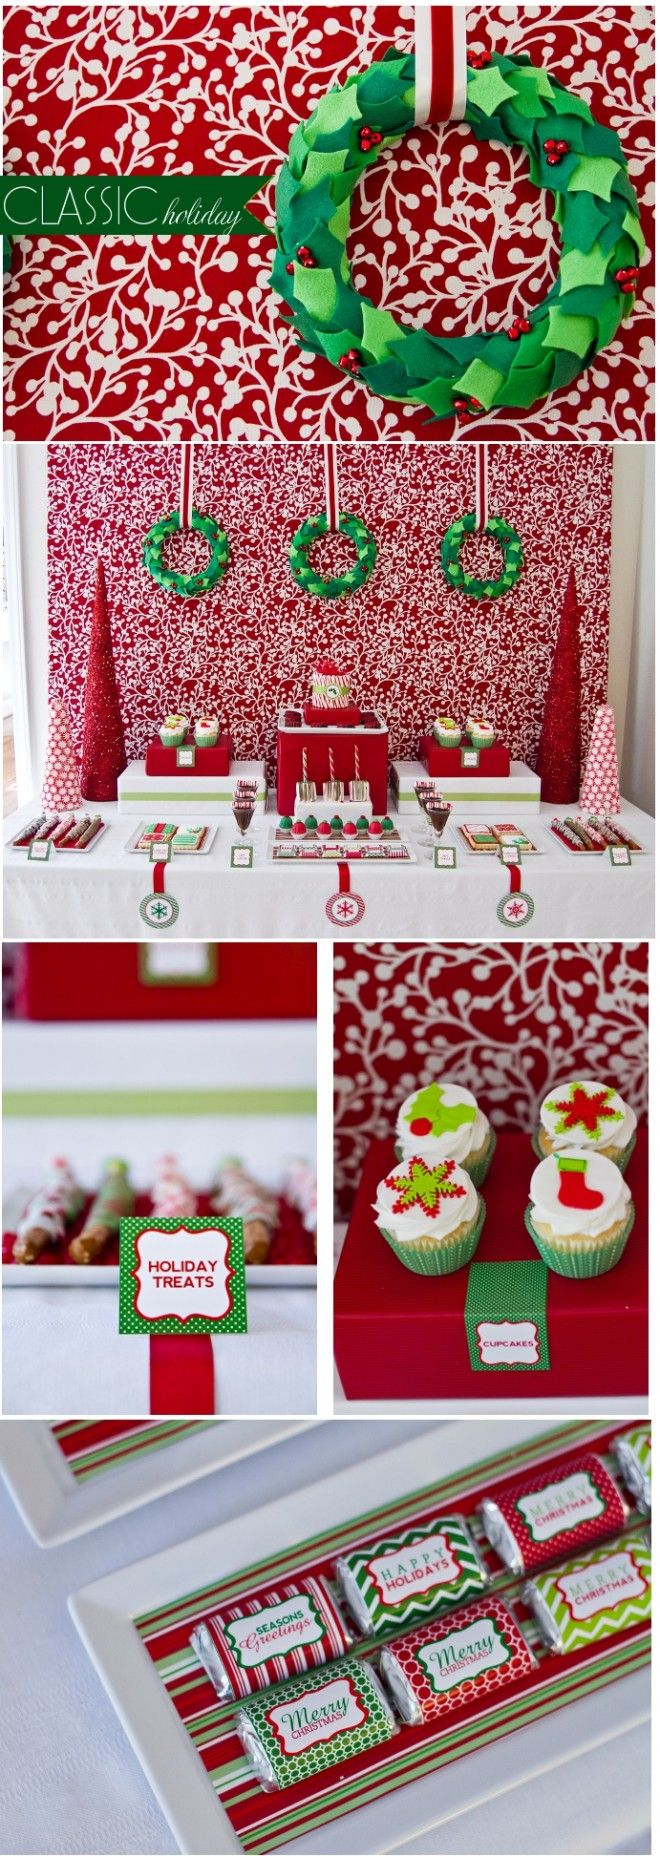 Christmas party buffet table decorations - Find This Pin And More On Adorable Dessert Buffet Tables